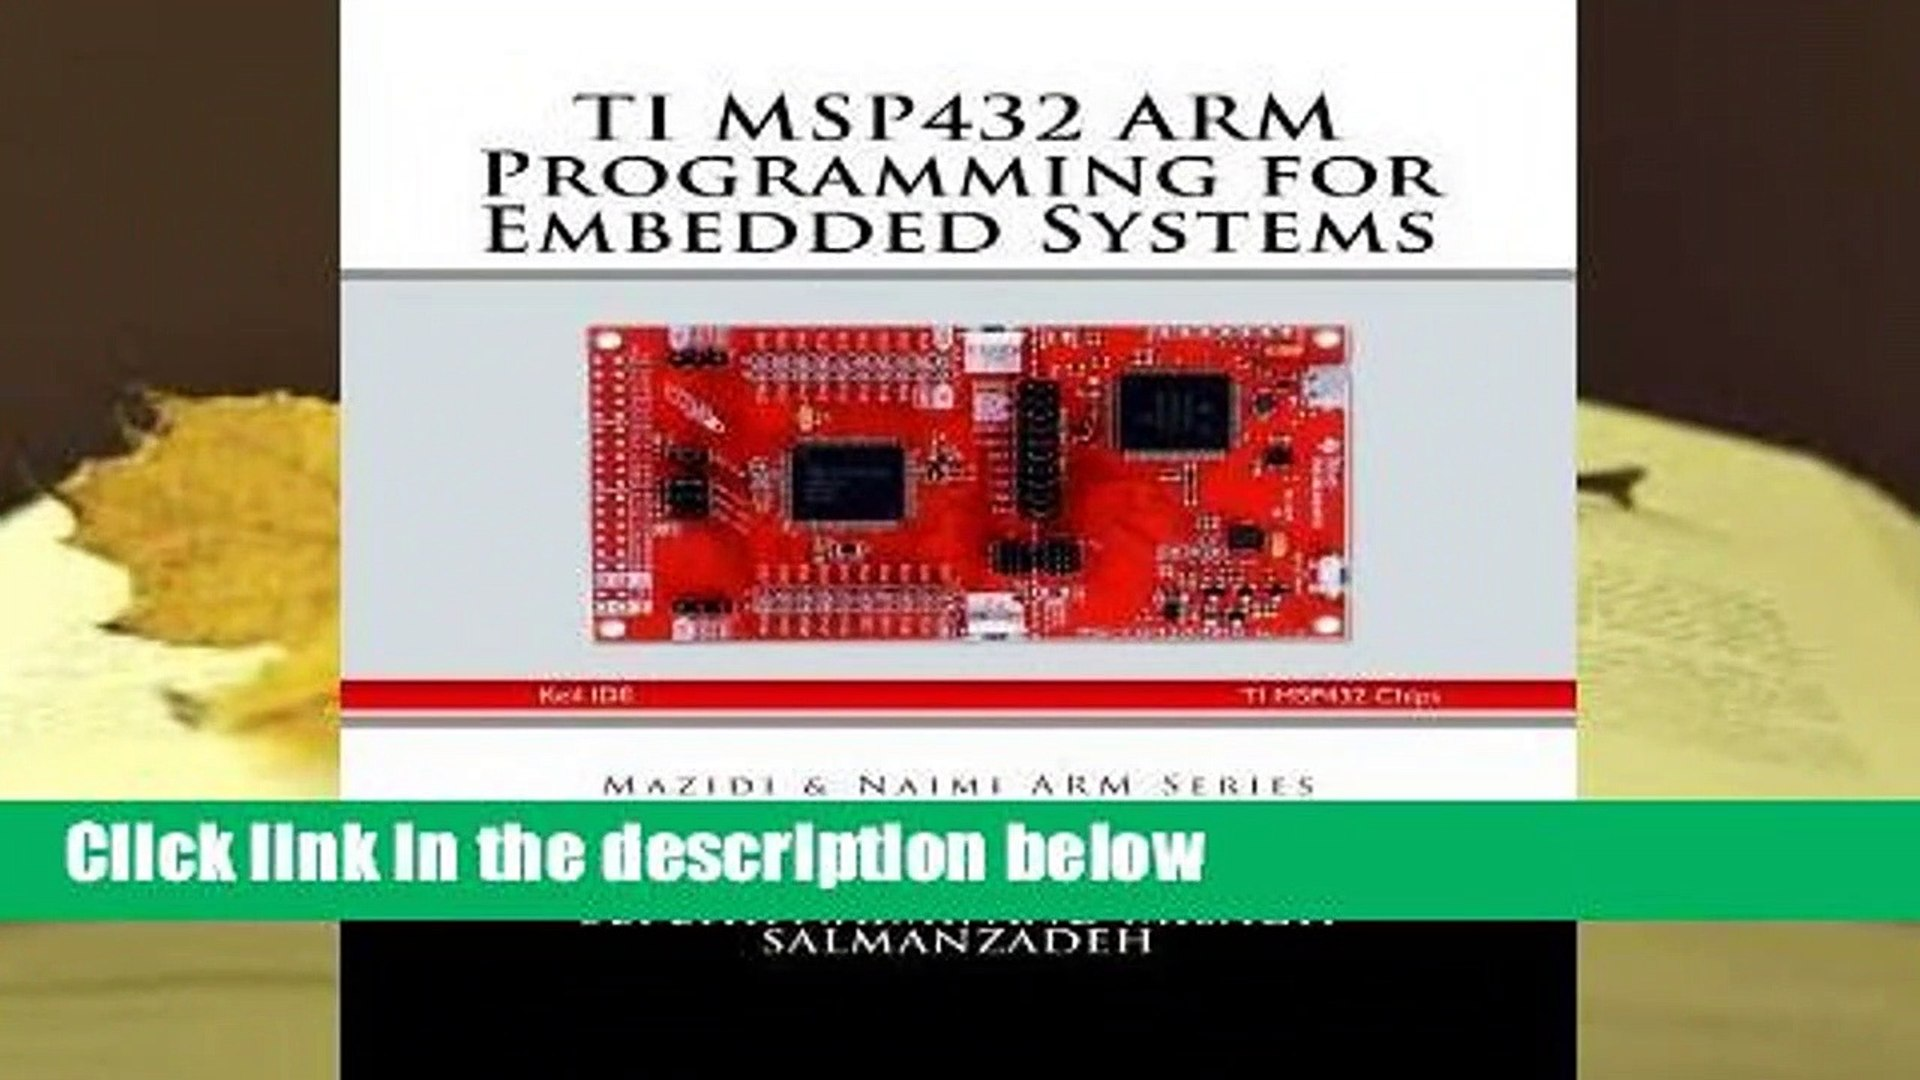 Library Ti Msp432 Arm Programming for Embedded Systems - Muhammad Ali Mazidi